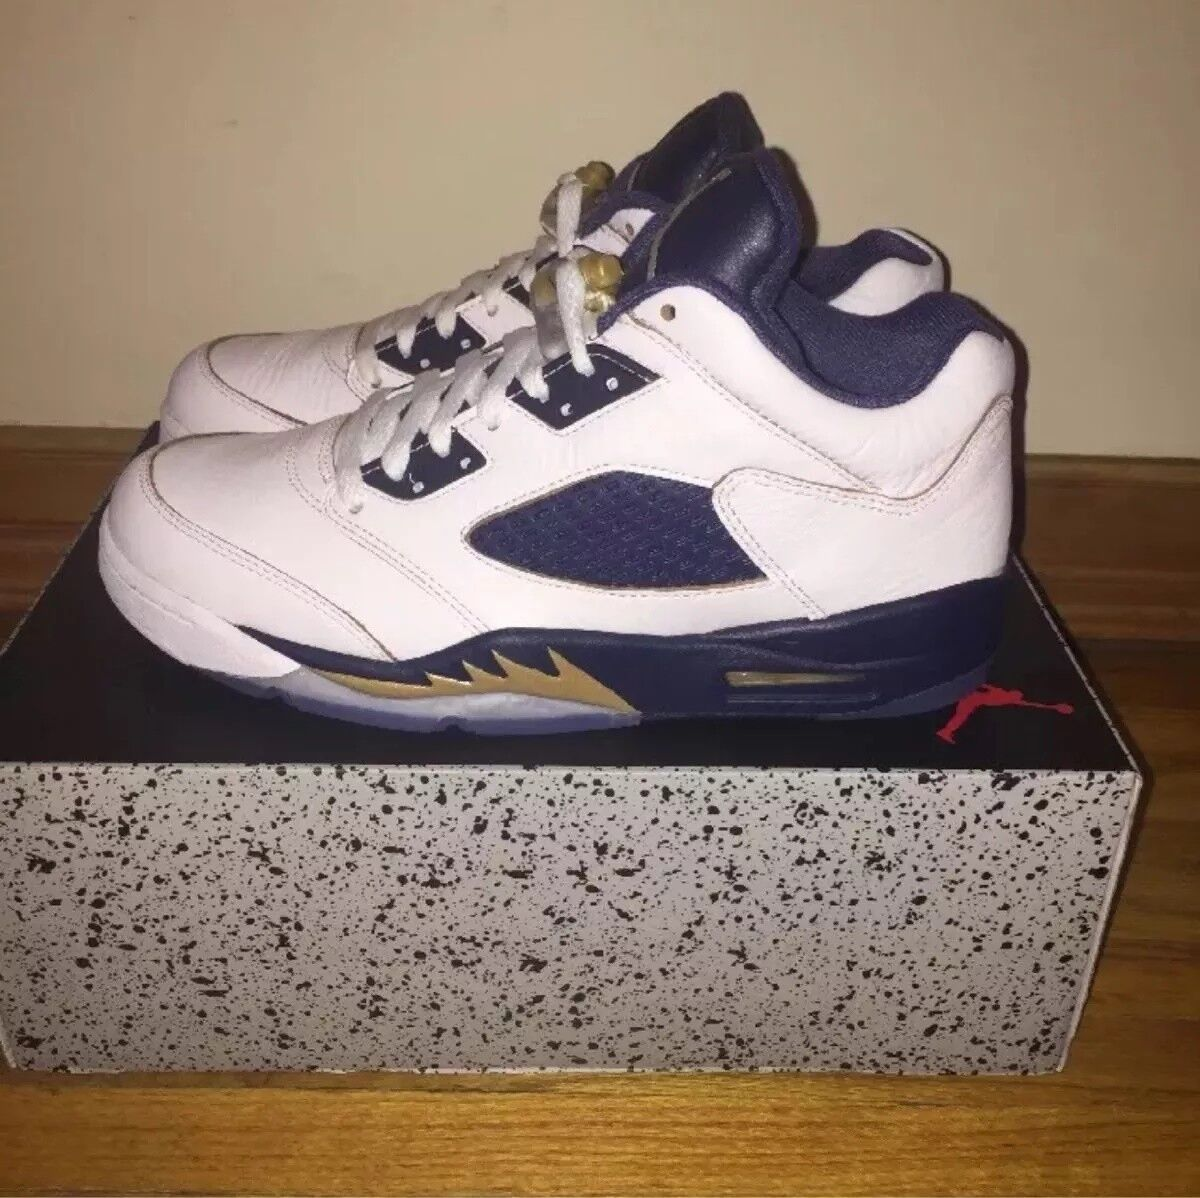 Air Jordan 5 Retro Low Dunk From Above Navy Blue Yellow Michigan Gold 819171 135 The latest discount shoes for men and women